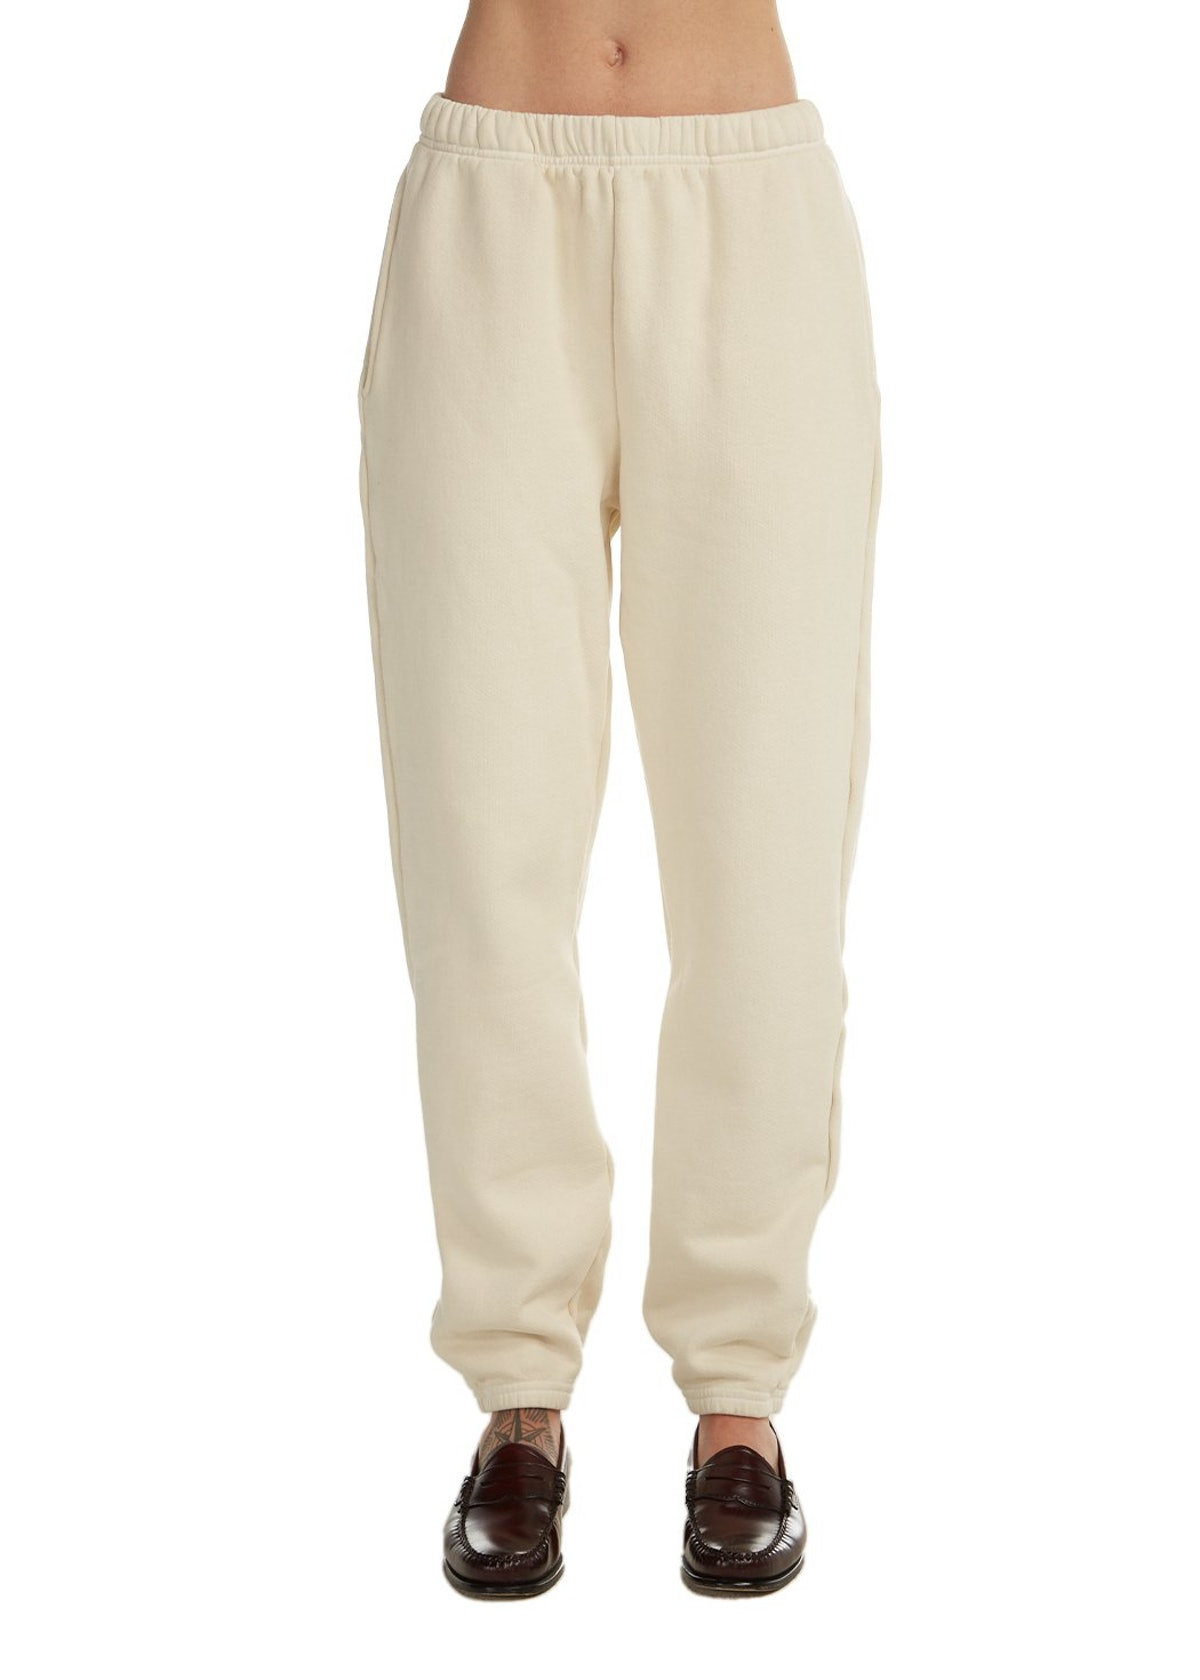 Heavyweight Classic Sweatpant from Les Tien.